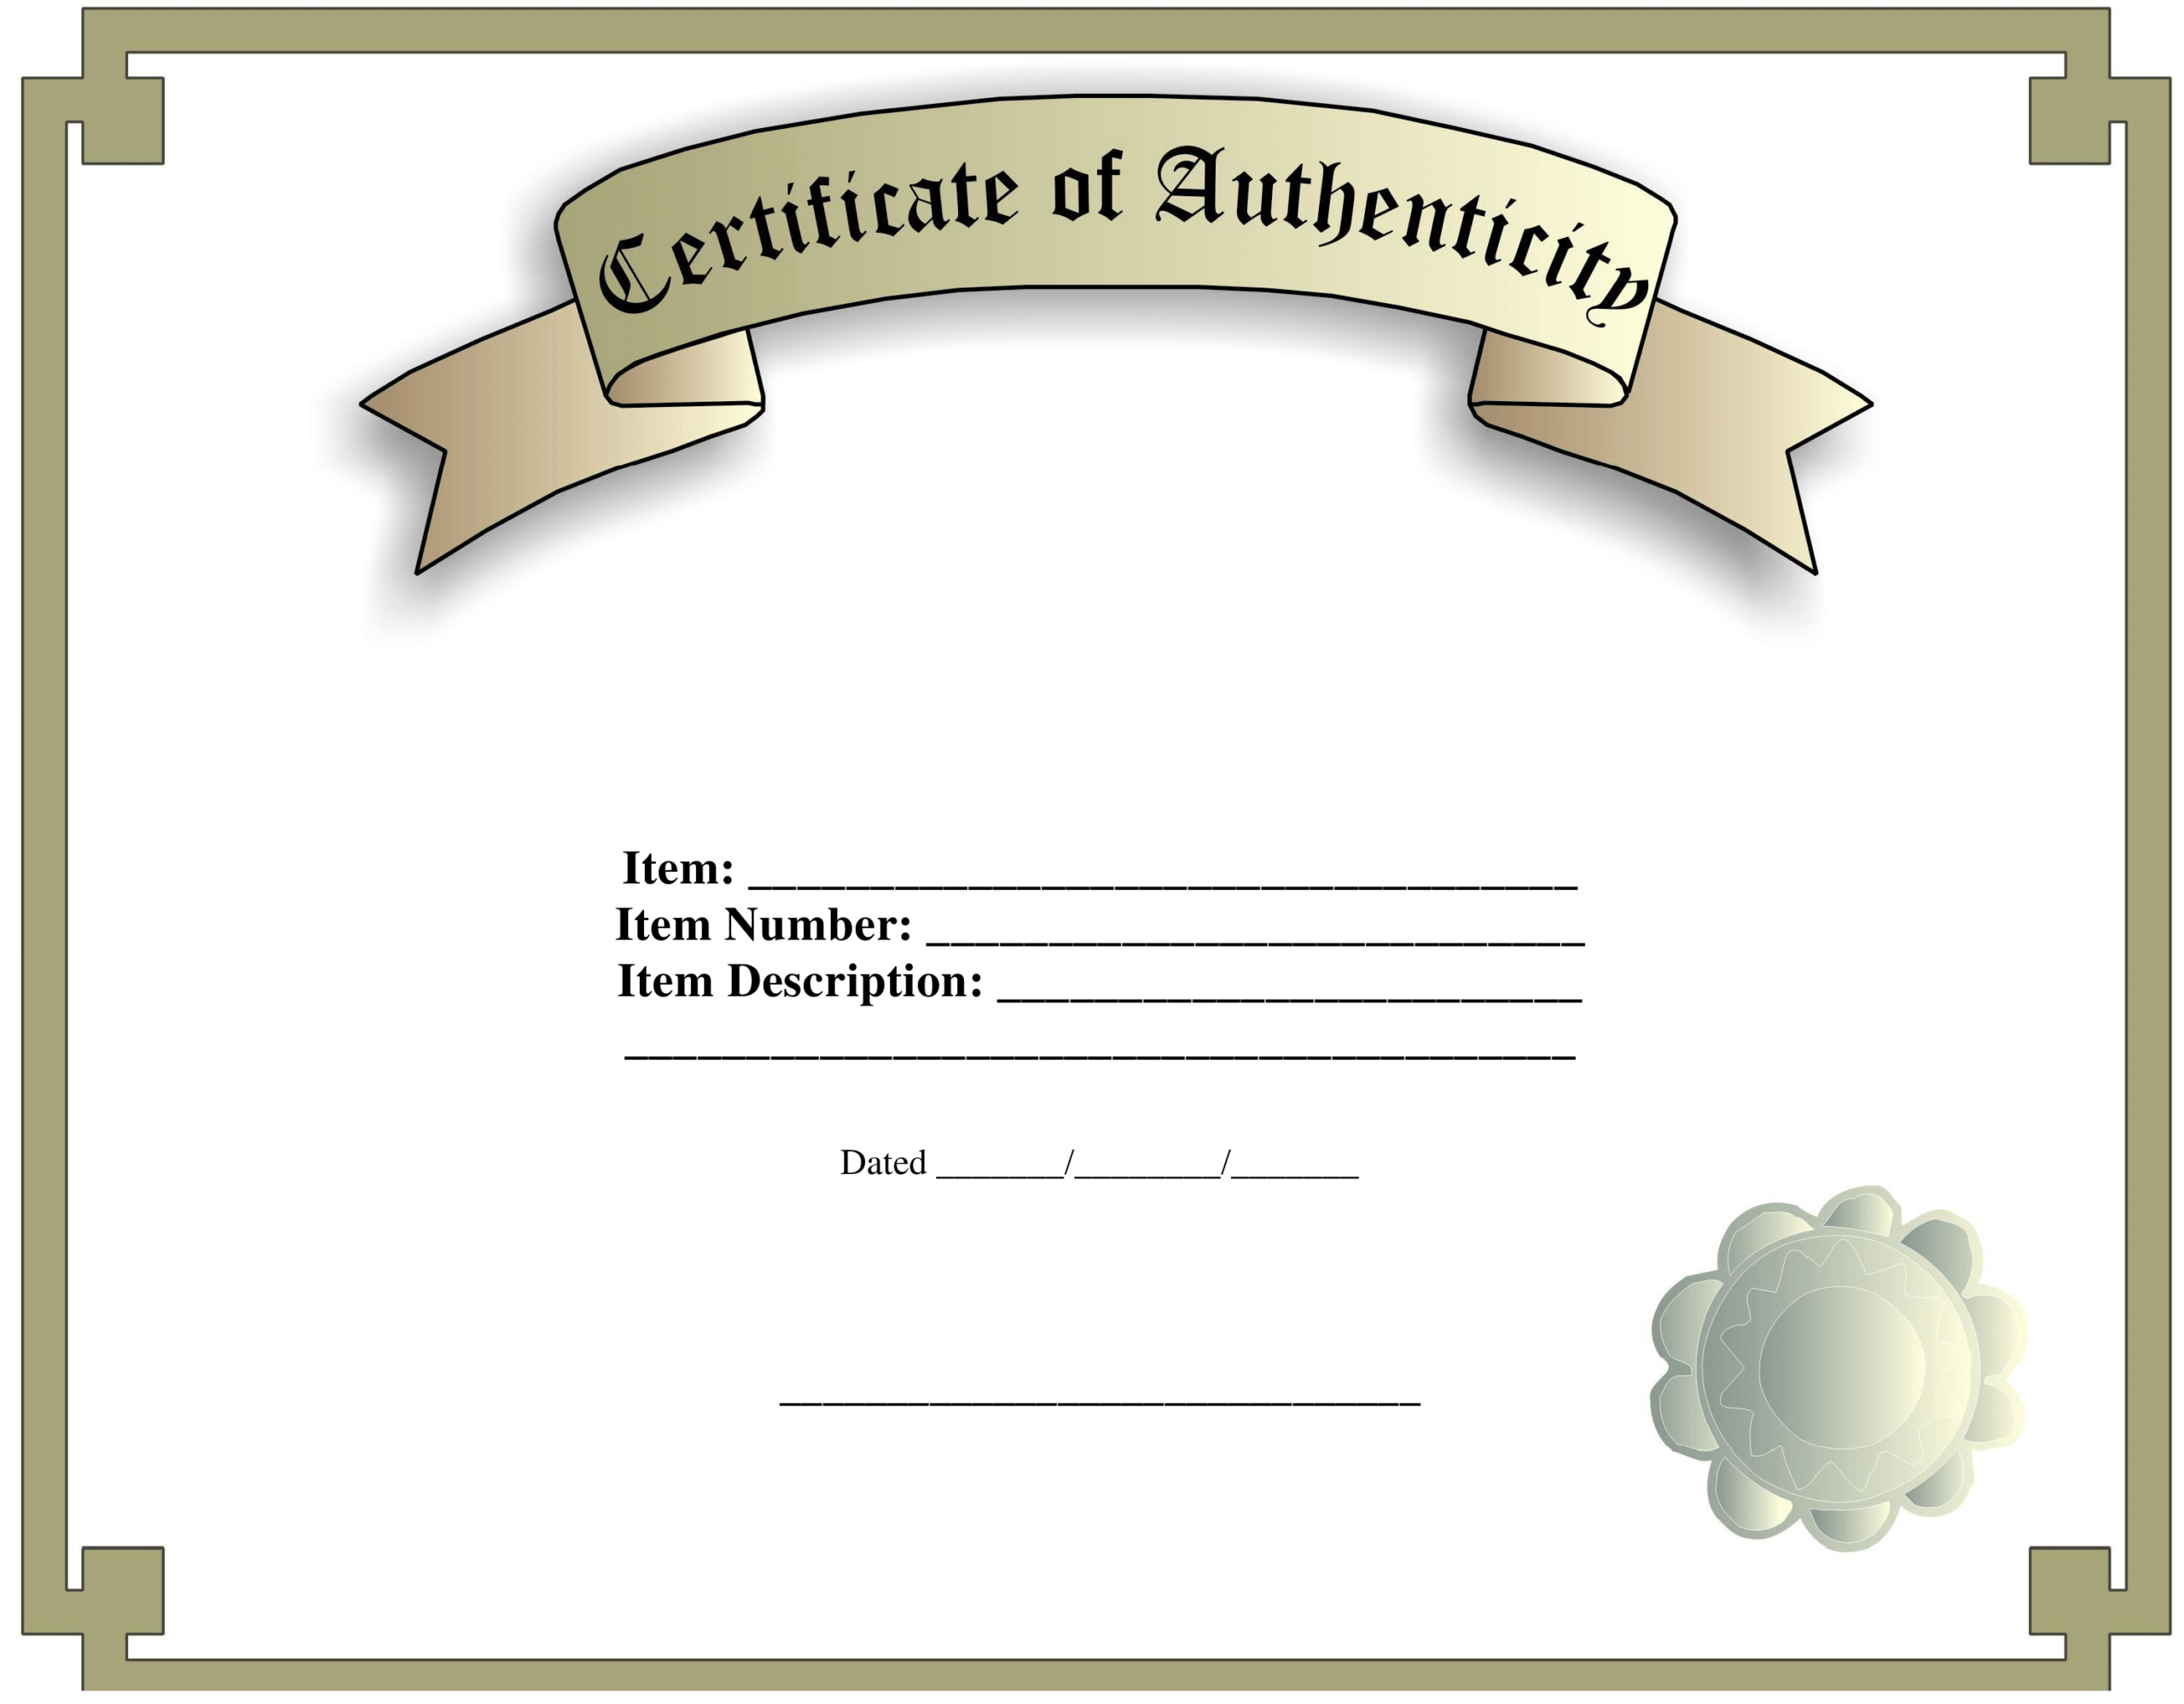 Certificate Of Authenticity Template | Templates At Inside Certificate Of Authenticity Template